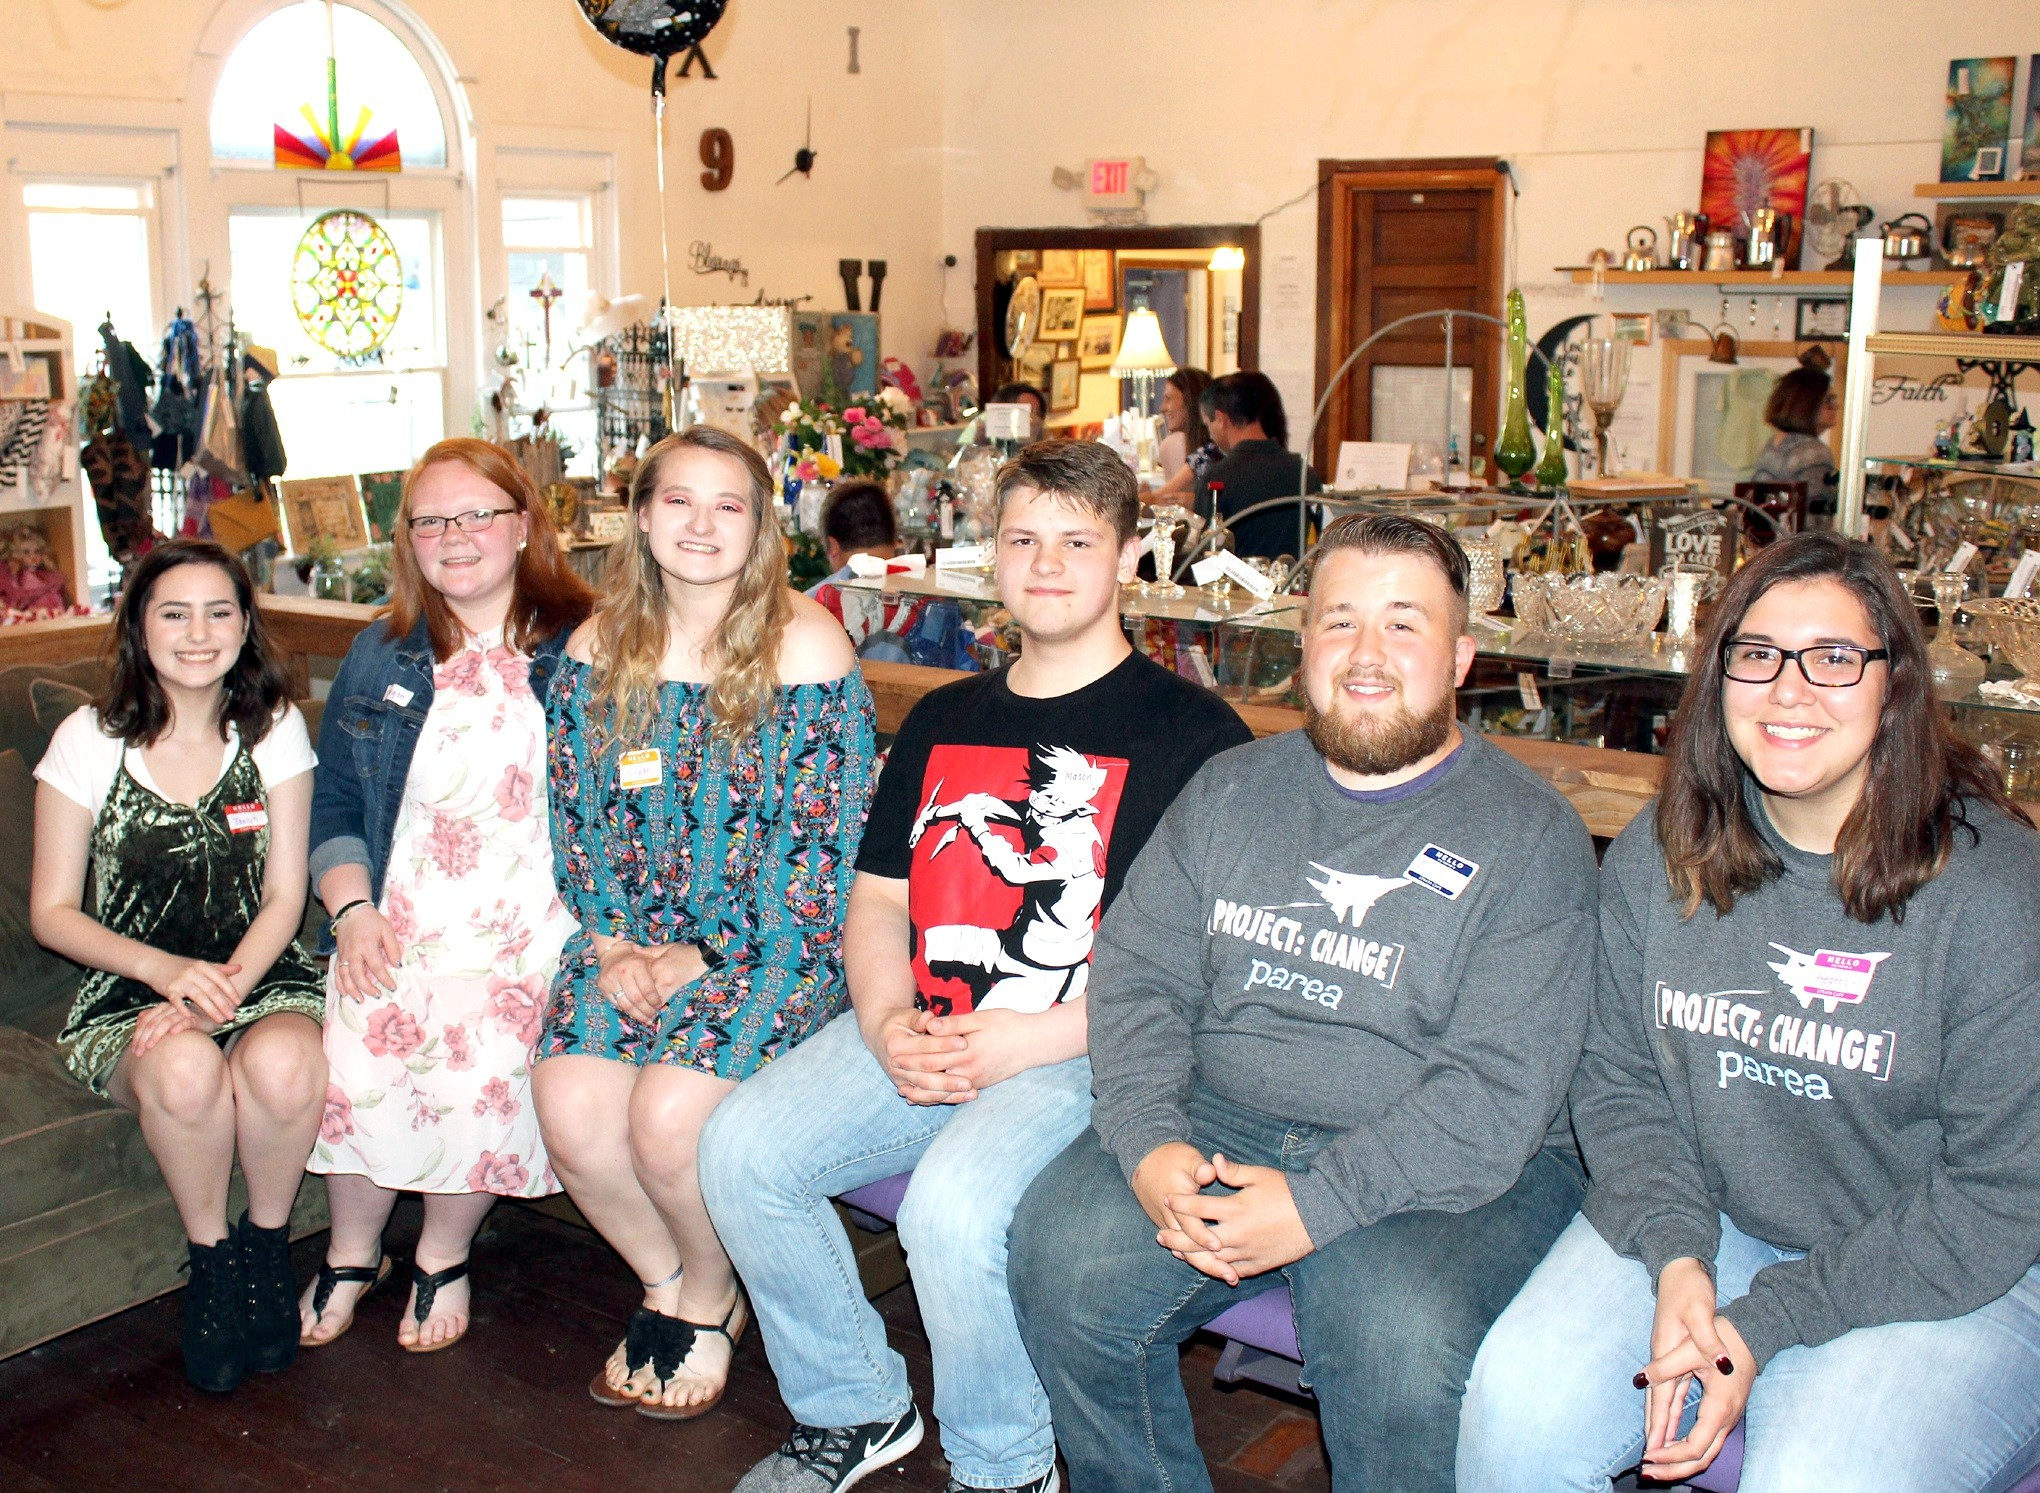 """Jaelyn McNamee, Morgan Kuhlman, Megan Wozniak, Mason McNally, Dakotah Bunn and Heather White were among students recognized May 29 at Random Acts of Walbridge. Bunn received a $1,000 scholarship from the Walbridge business for being """"a good student, good friend and good citizen."""" (Submitted photo)"""